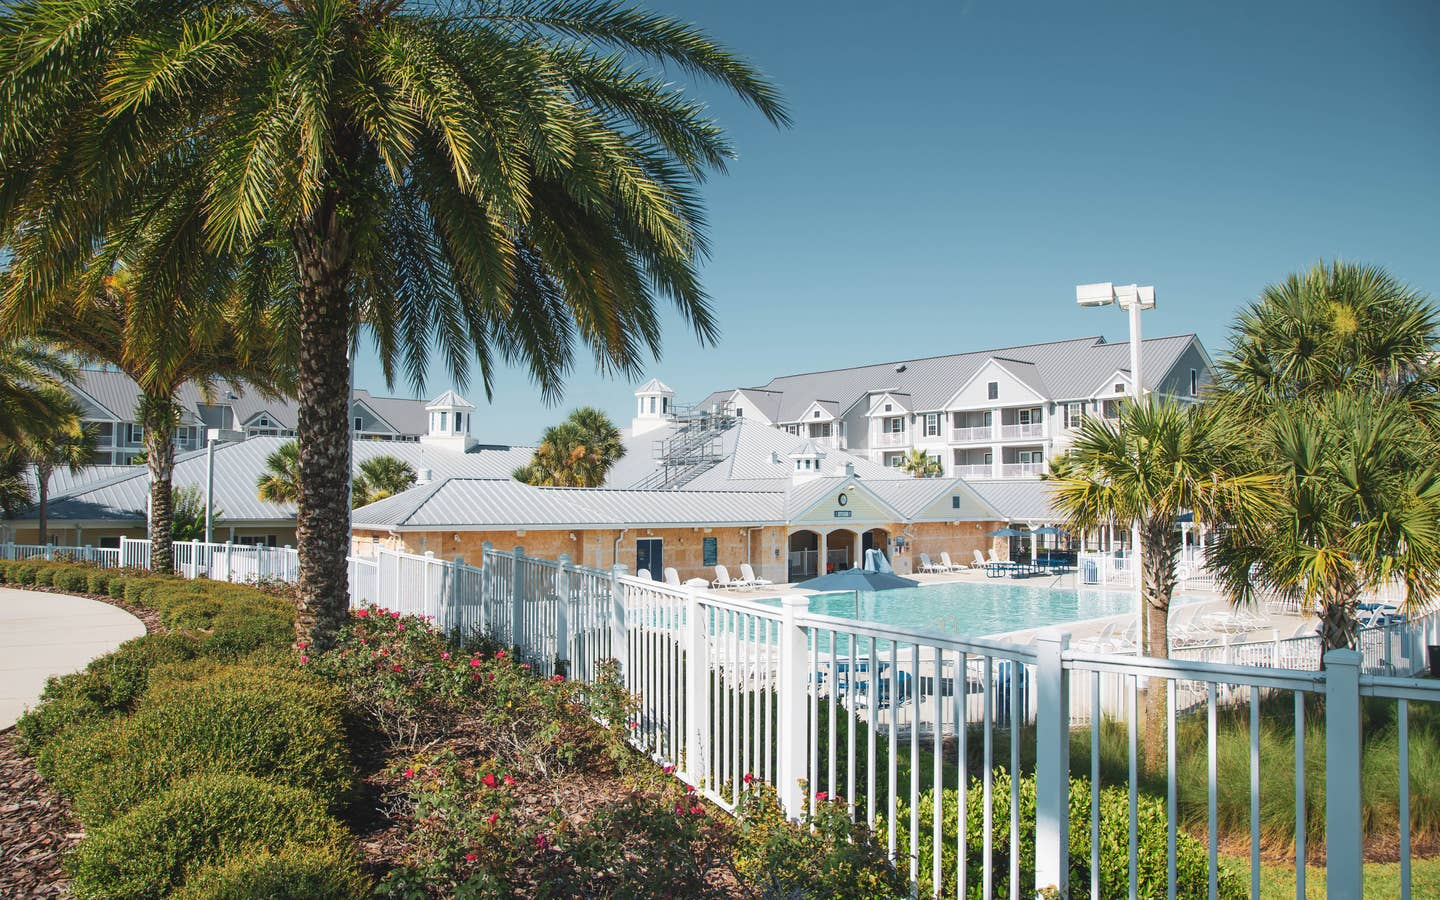 View of outdoor pool and property building at Orlando Breeze Resort in Florida.